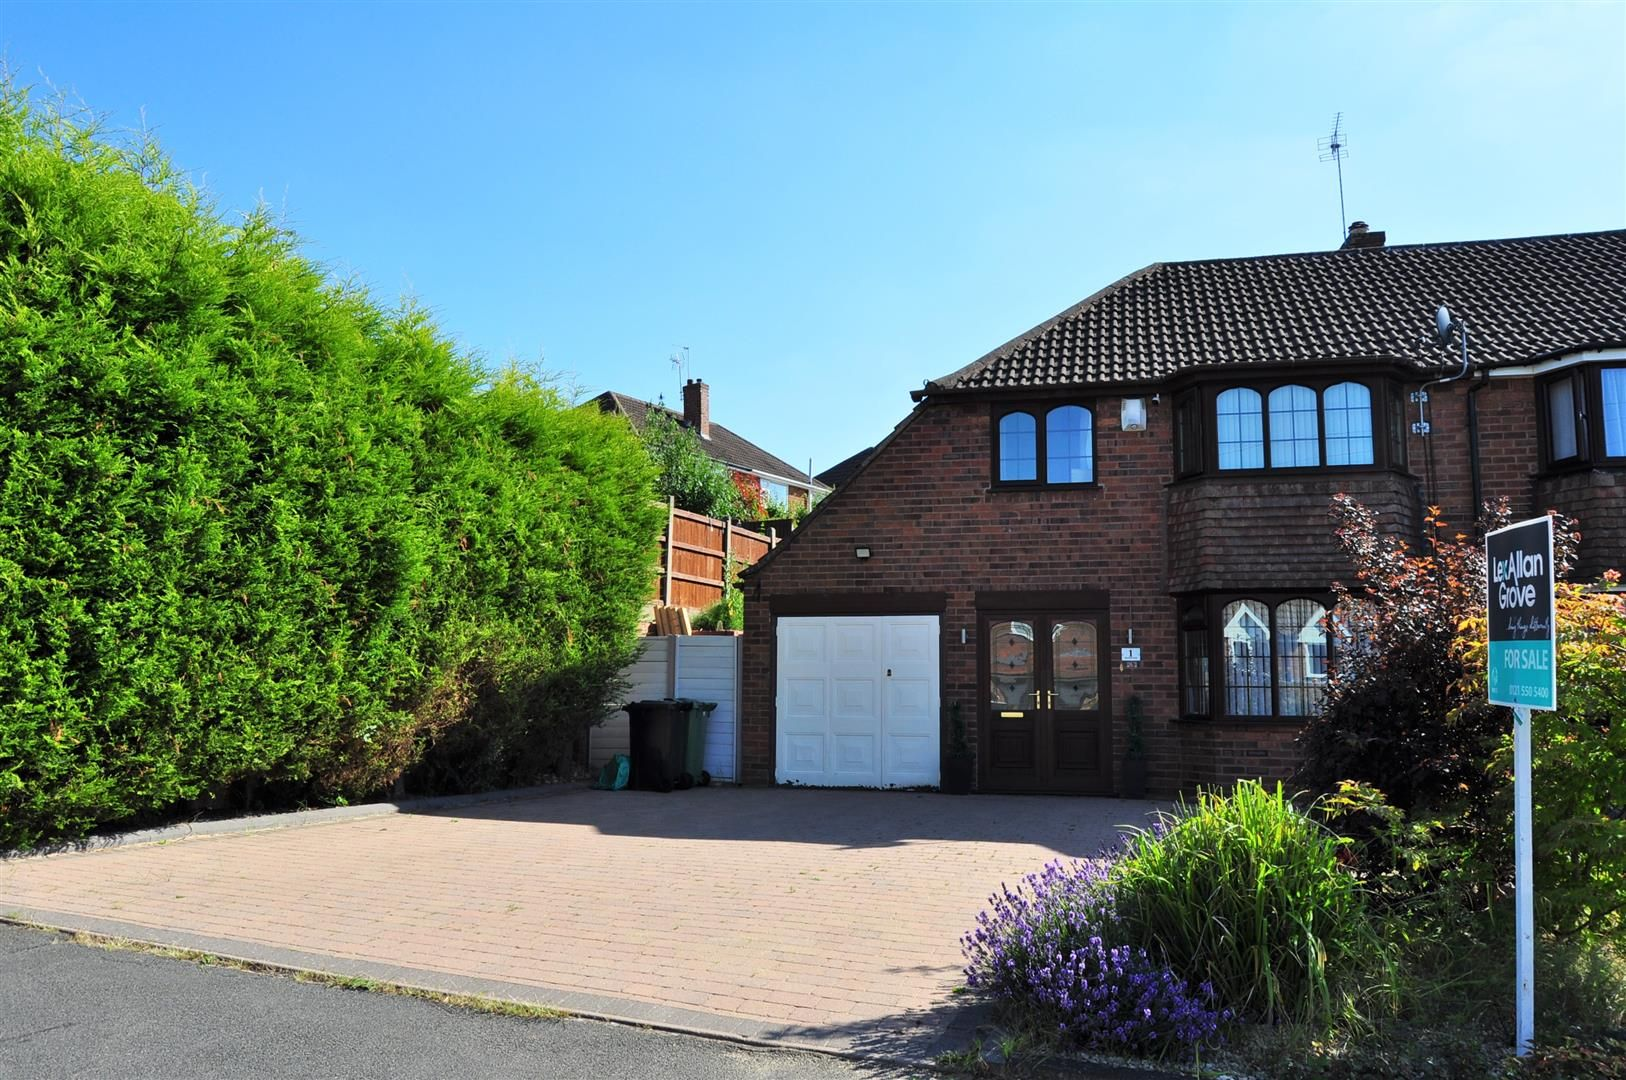 3 bed semi-detached for sale in Hasbury - Property Image 1